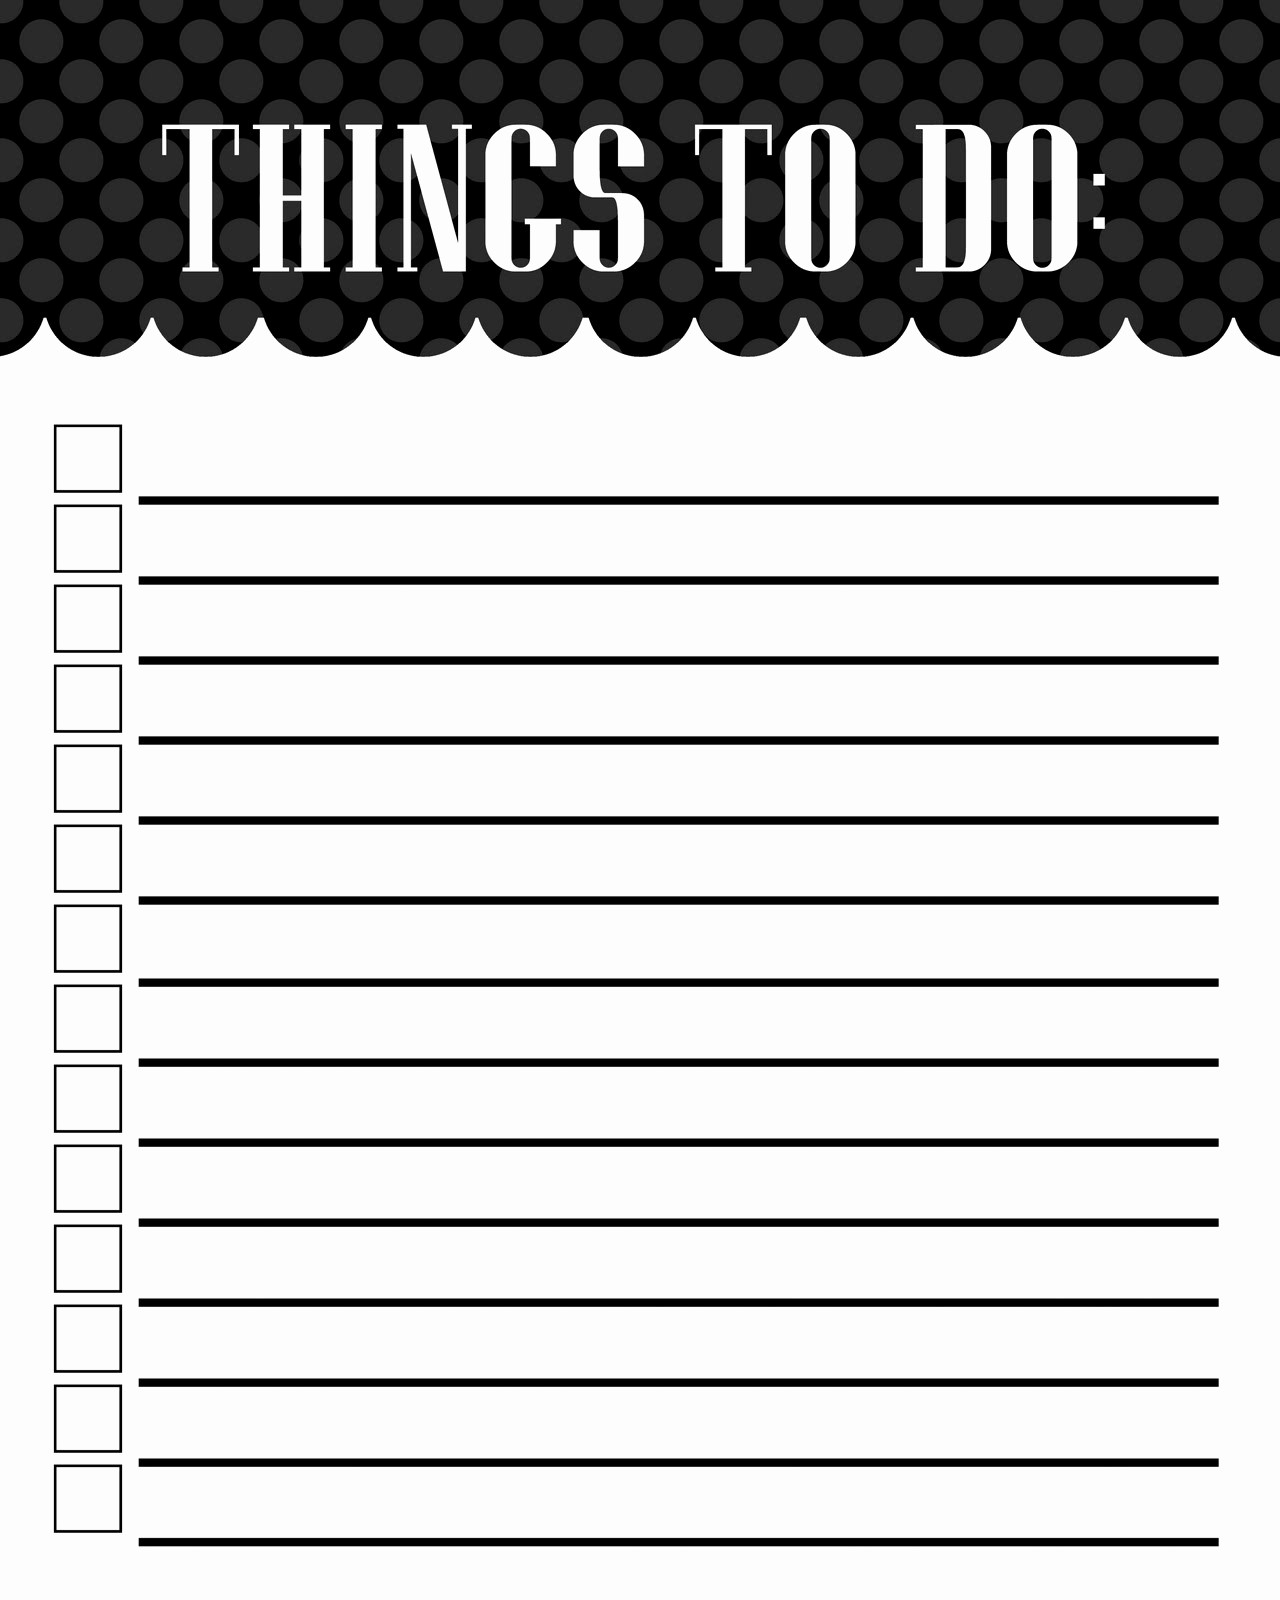 Today to Do List Template Awesome Mckell S Closet to Do List